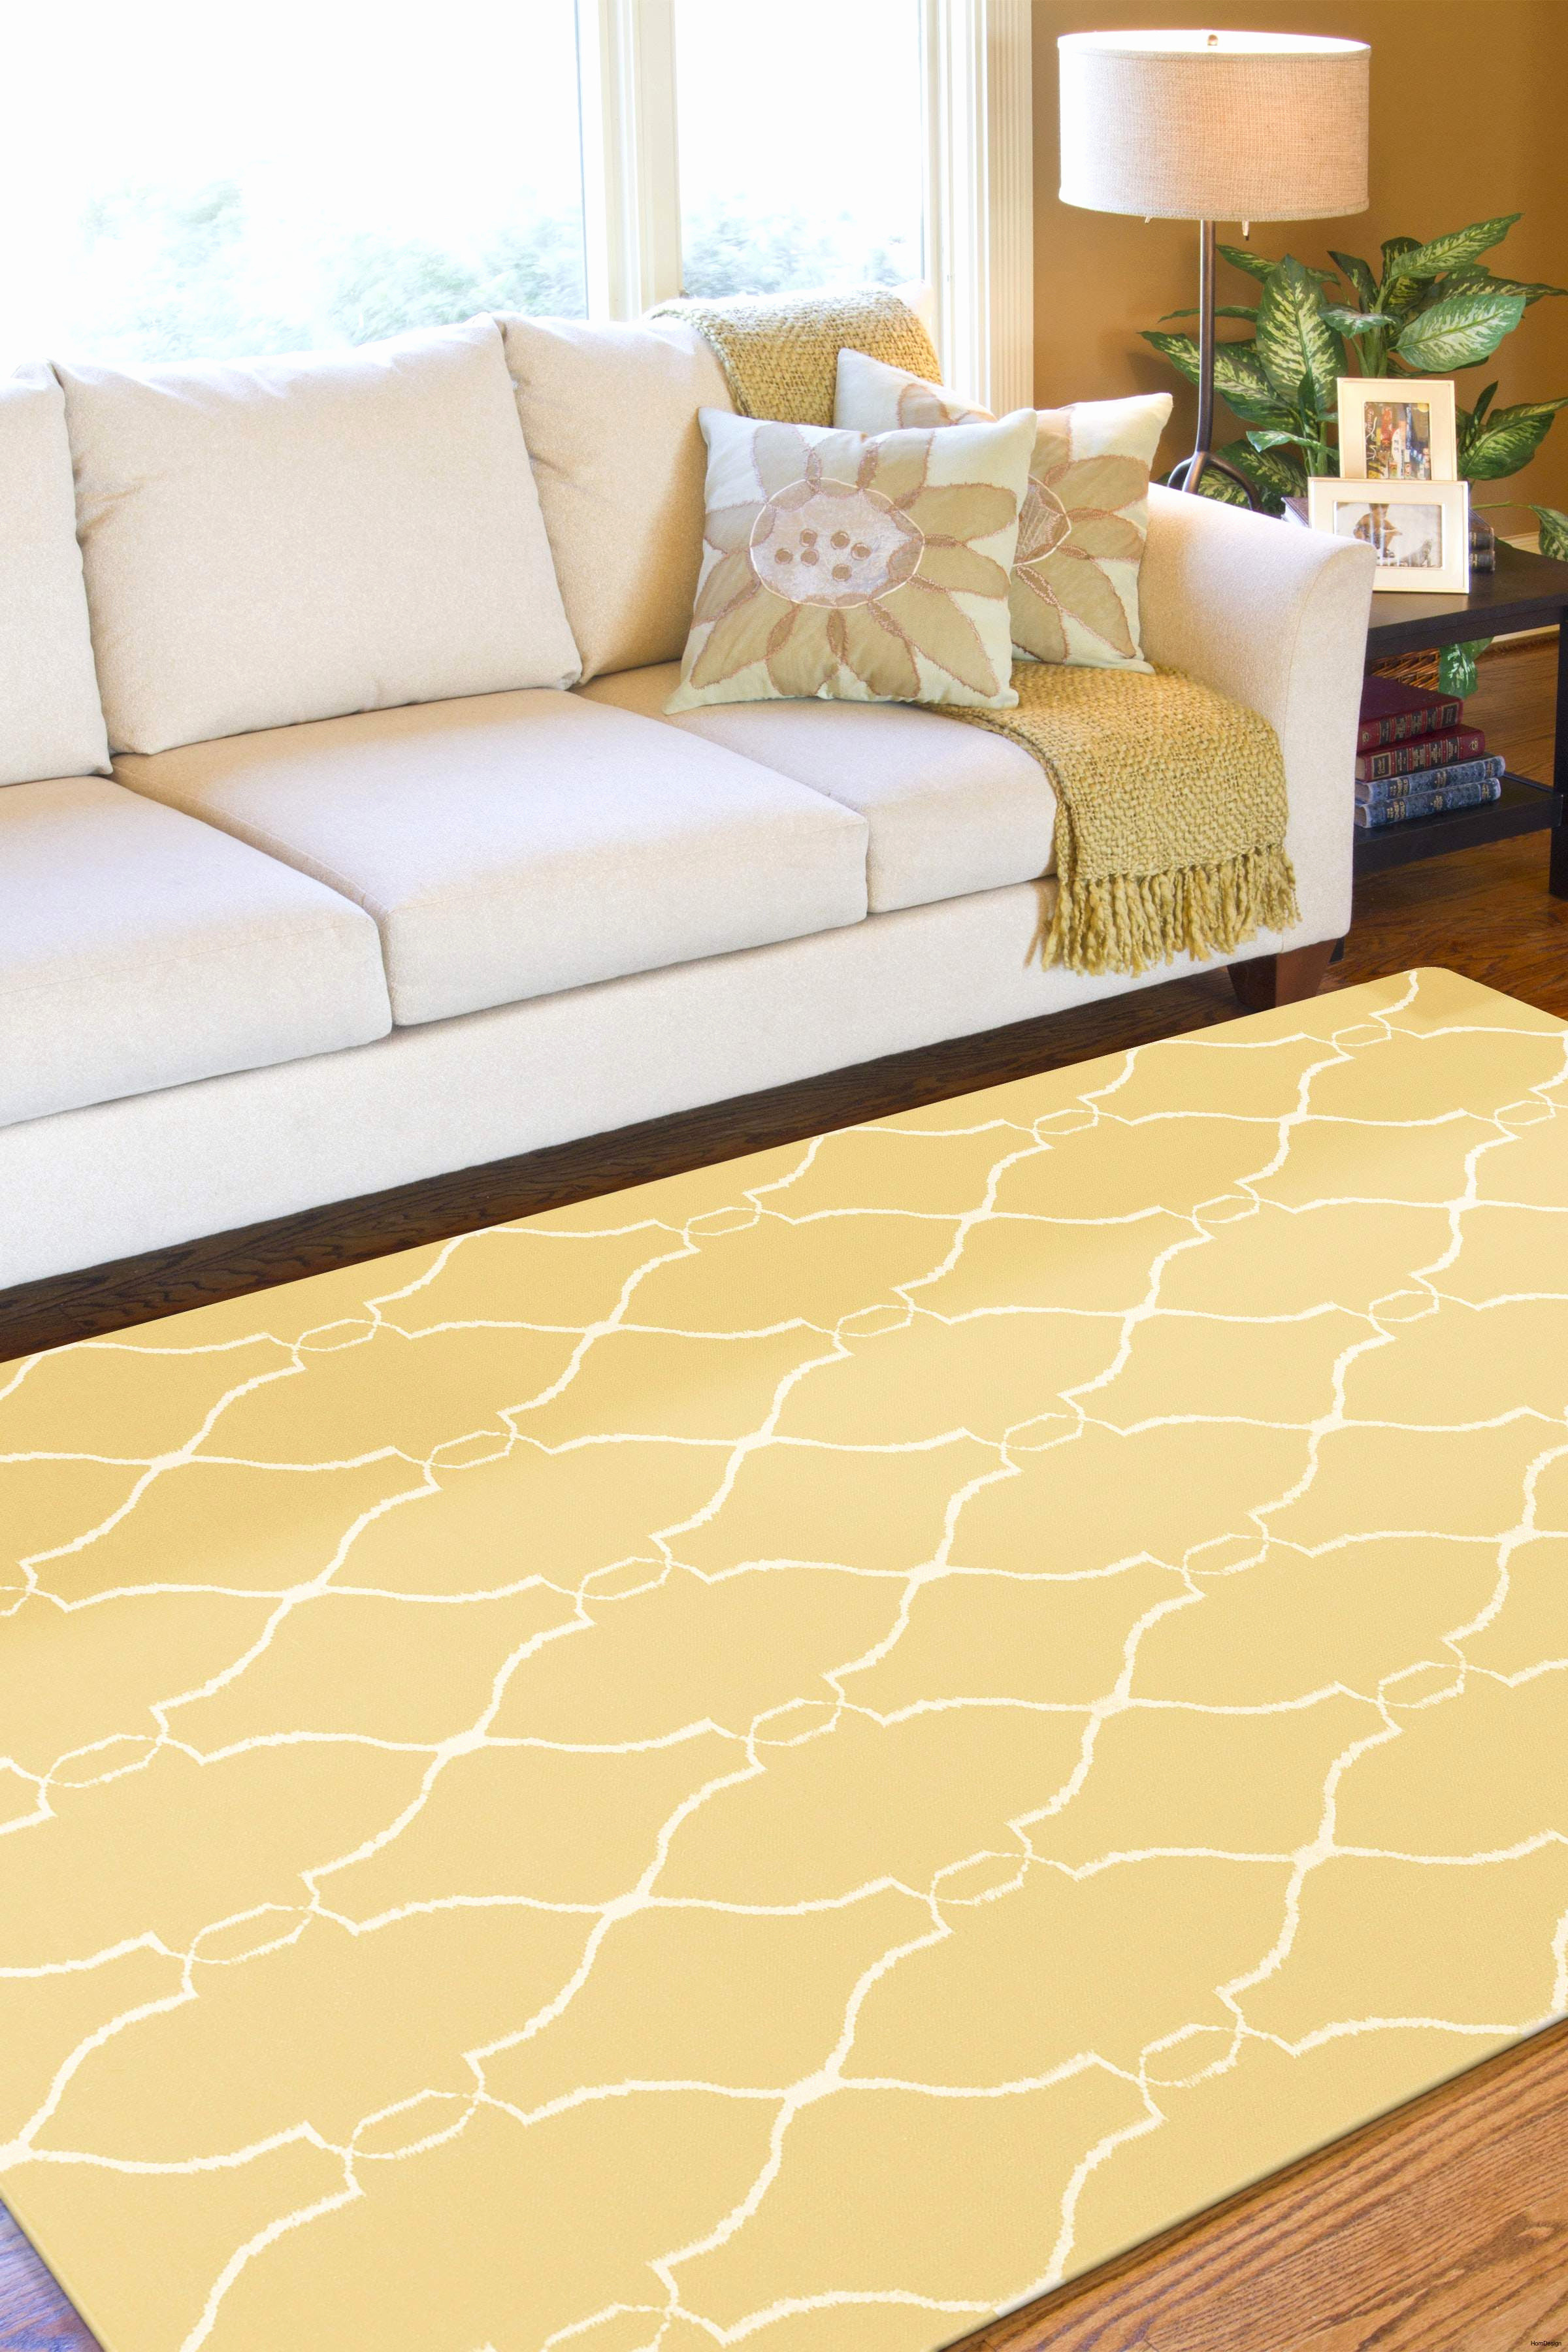 cheap hardwood flooring of 26 picture of decorating with area rugs on hardwood floors with decorating with area rugs on hardwood floors best of decorating with area rugs hardwood floors unique